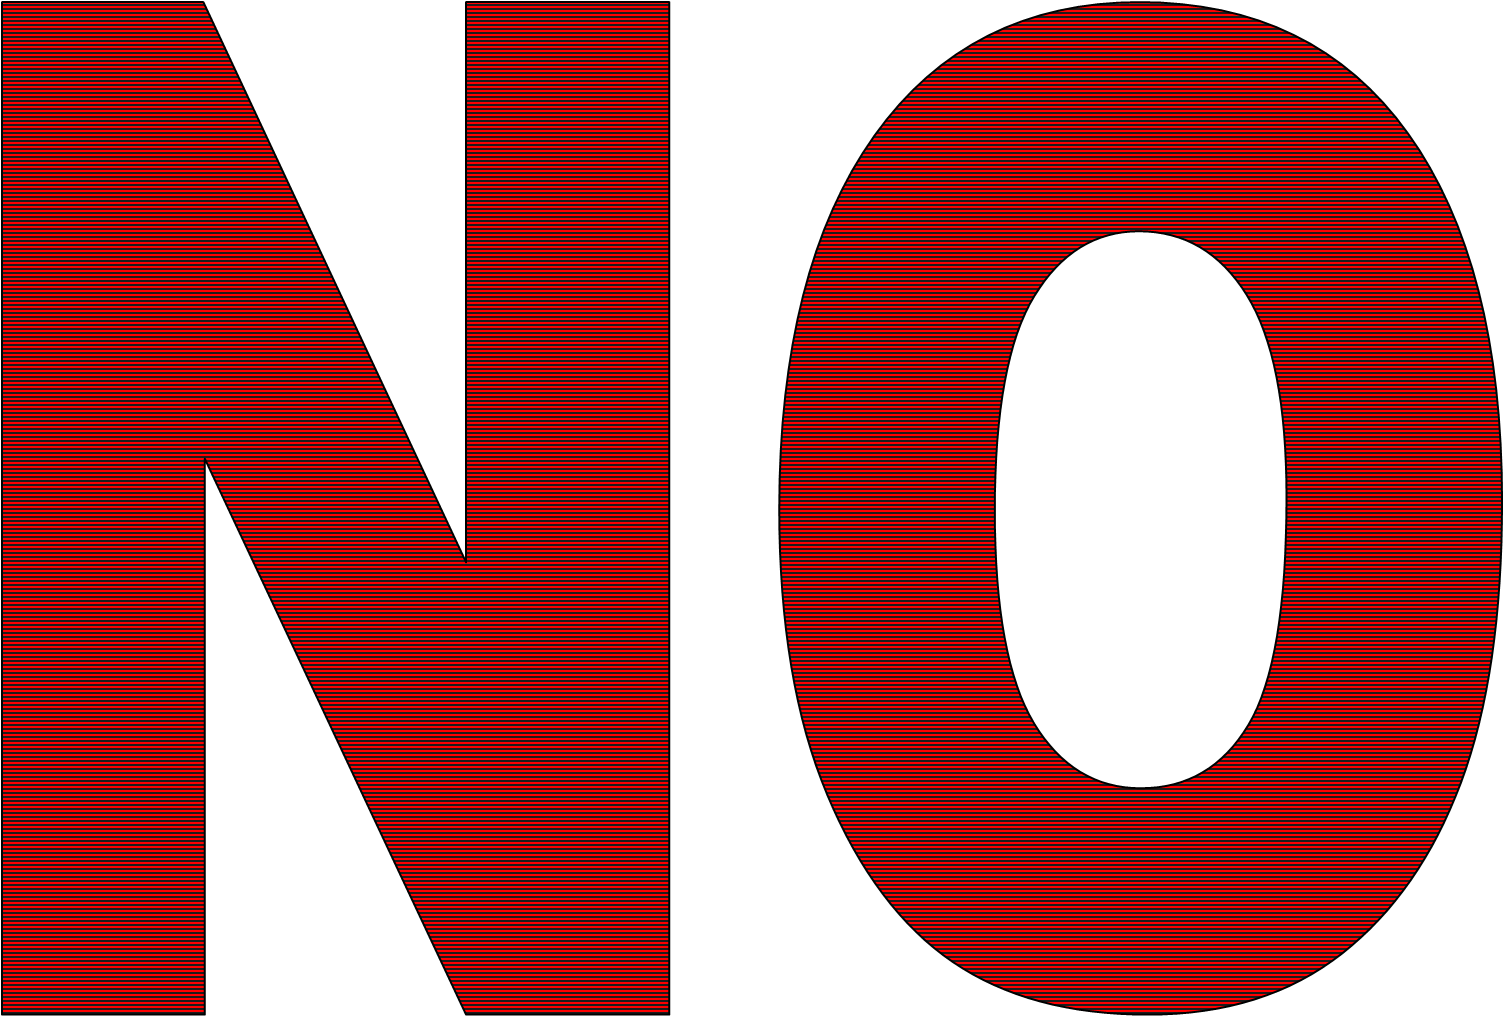 No! png word. No turn the page